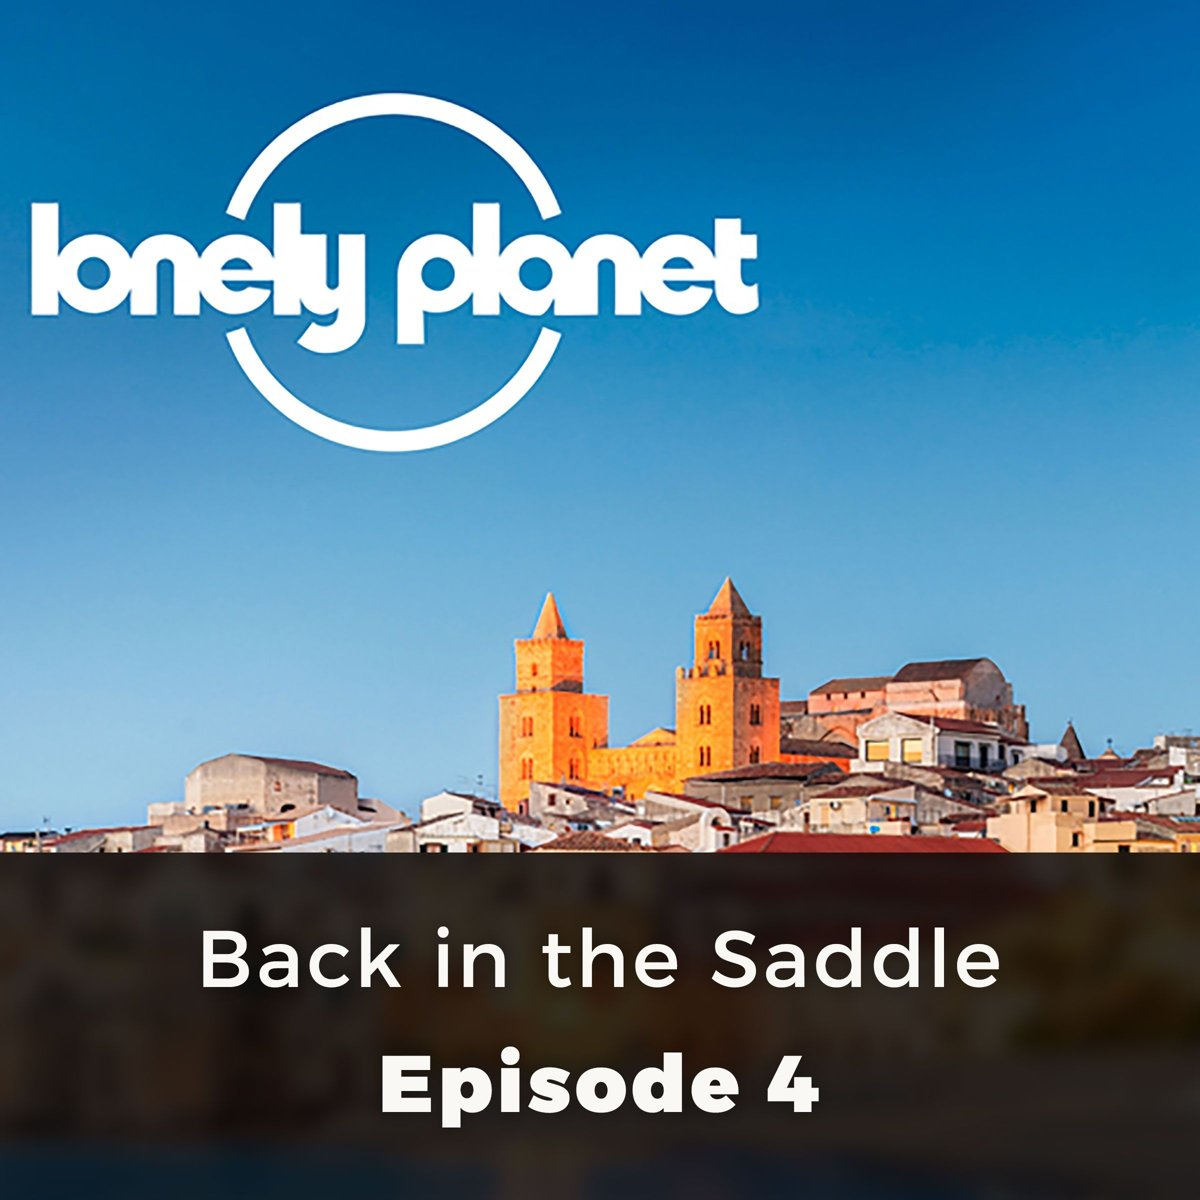 Lonely Planet: Back in the Saddle